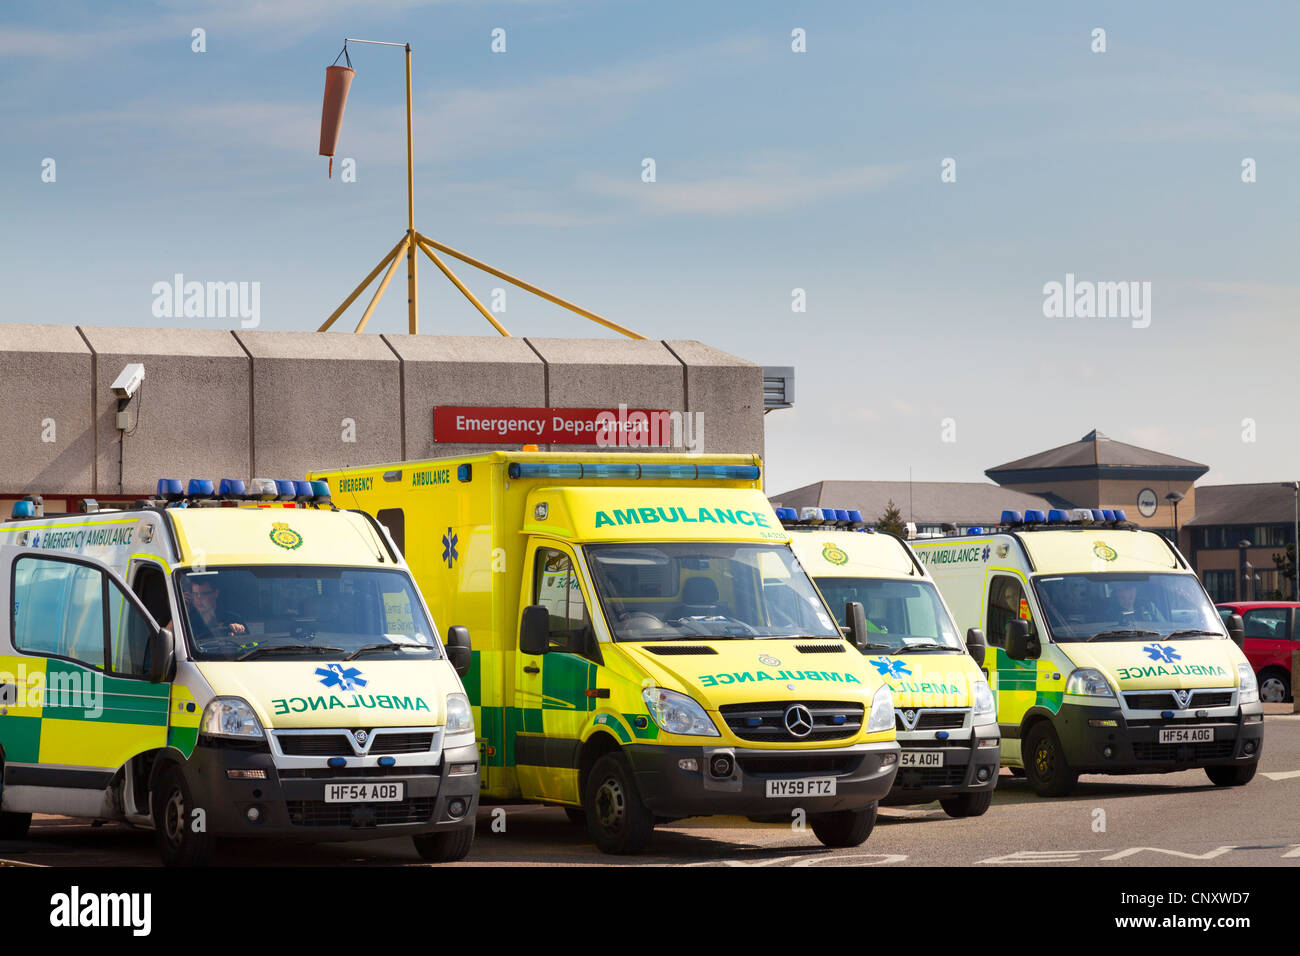 Emergency ambulances parked outside accident and emergency department of Royal Bournemouth Hospital. - Stock Image